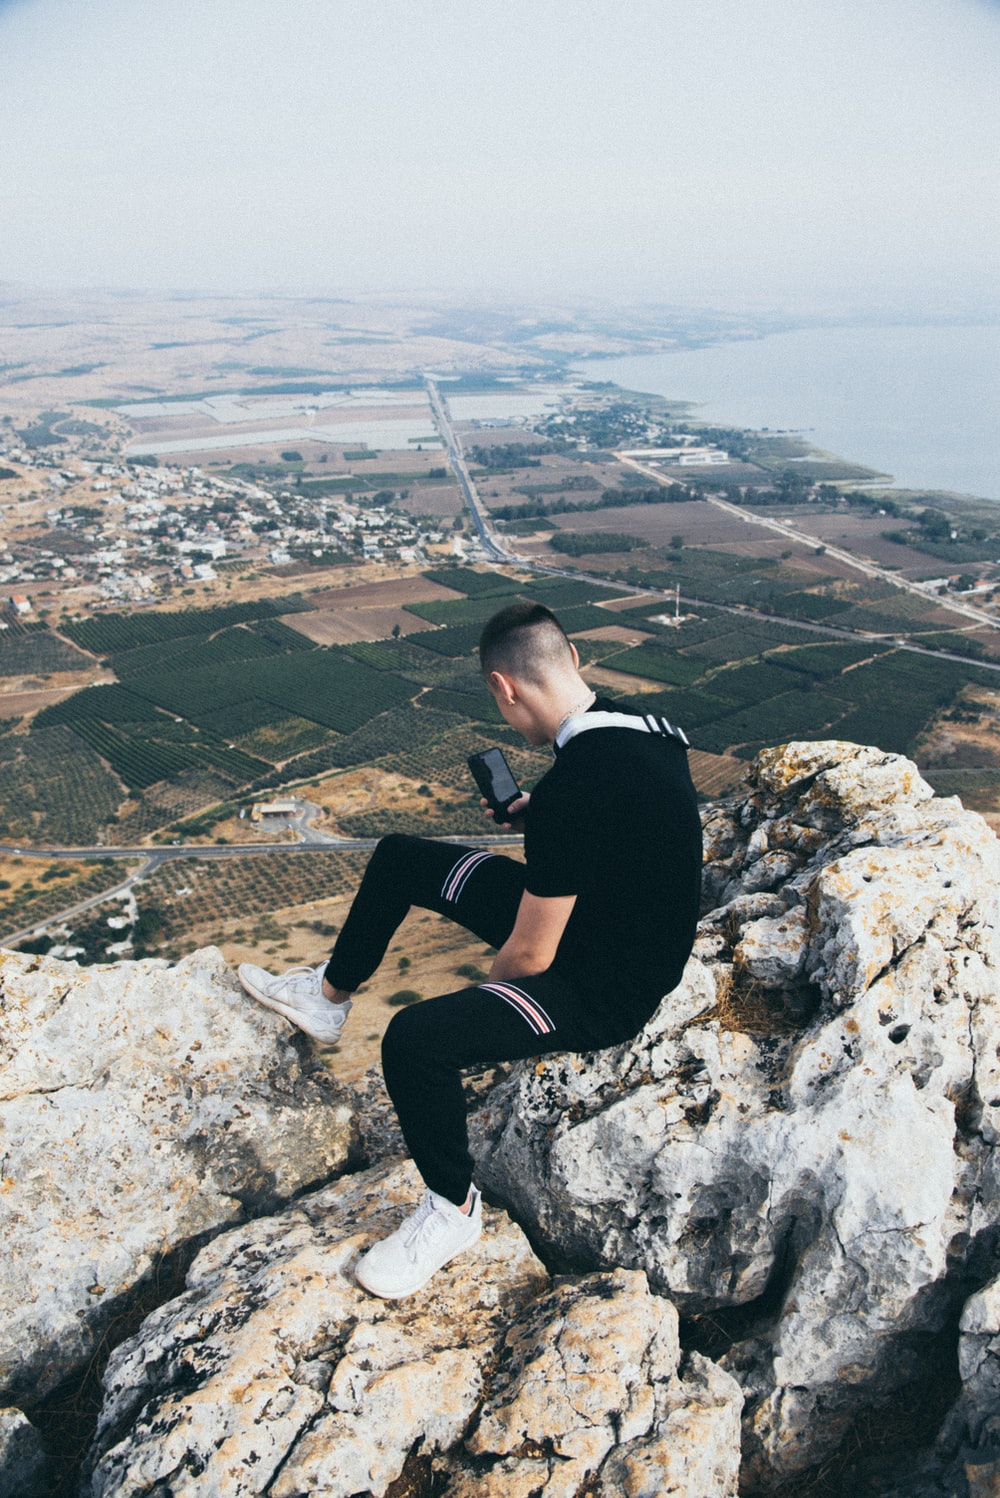 man wearing black t-shirt using phone while sitting on rocky hill viewing houses on green field during daytime